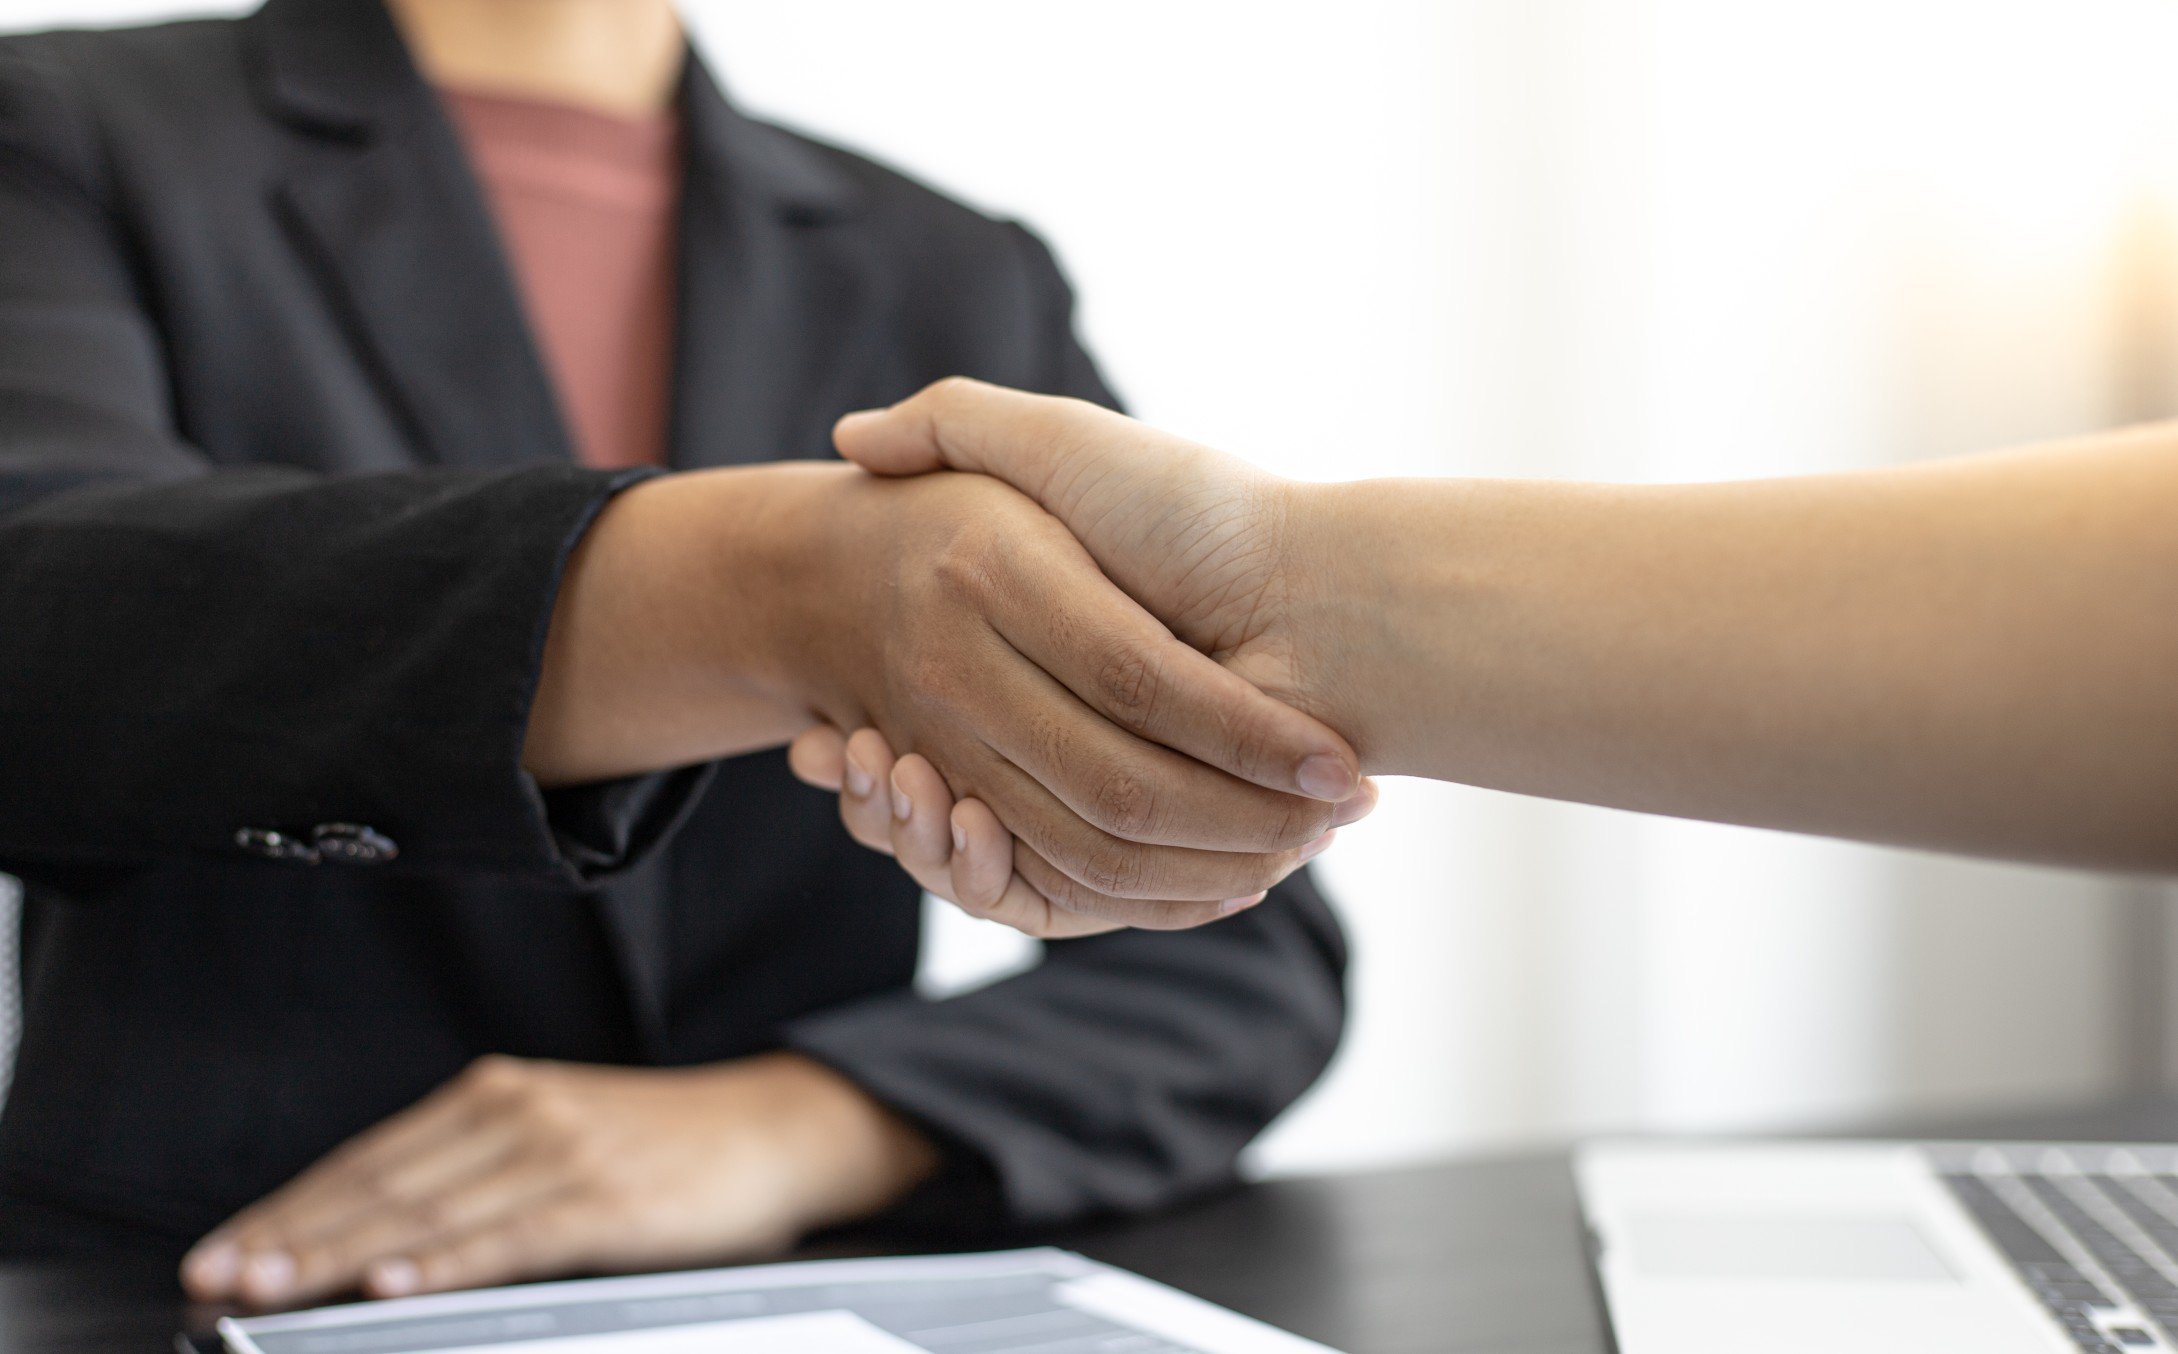 employer-or-hr-department-welcomes-new-employees-shaking-hands-with-congratulations-or-achieving_t20_aazGax